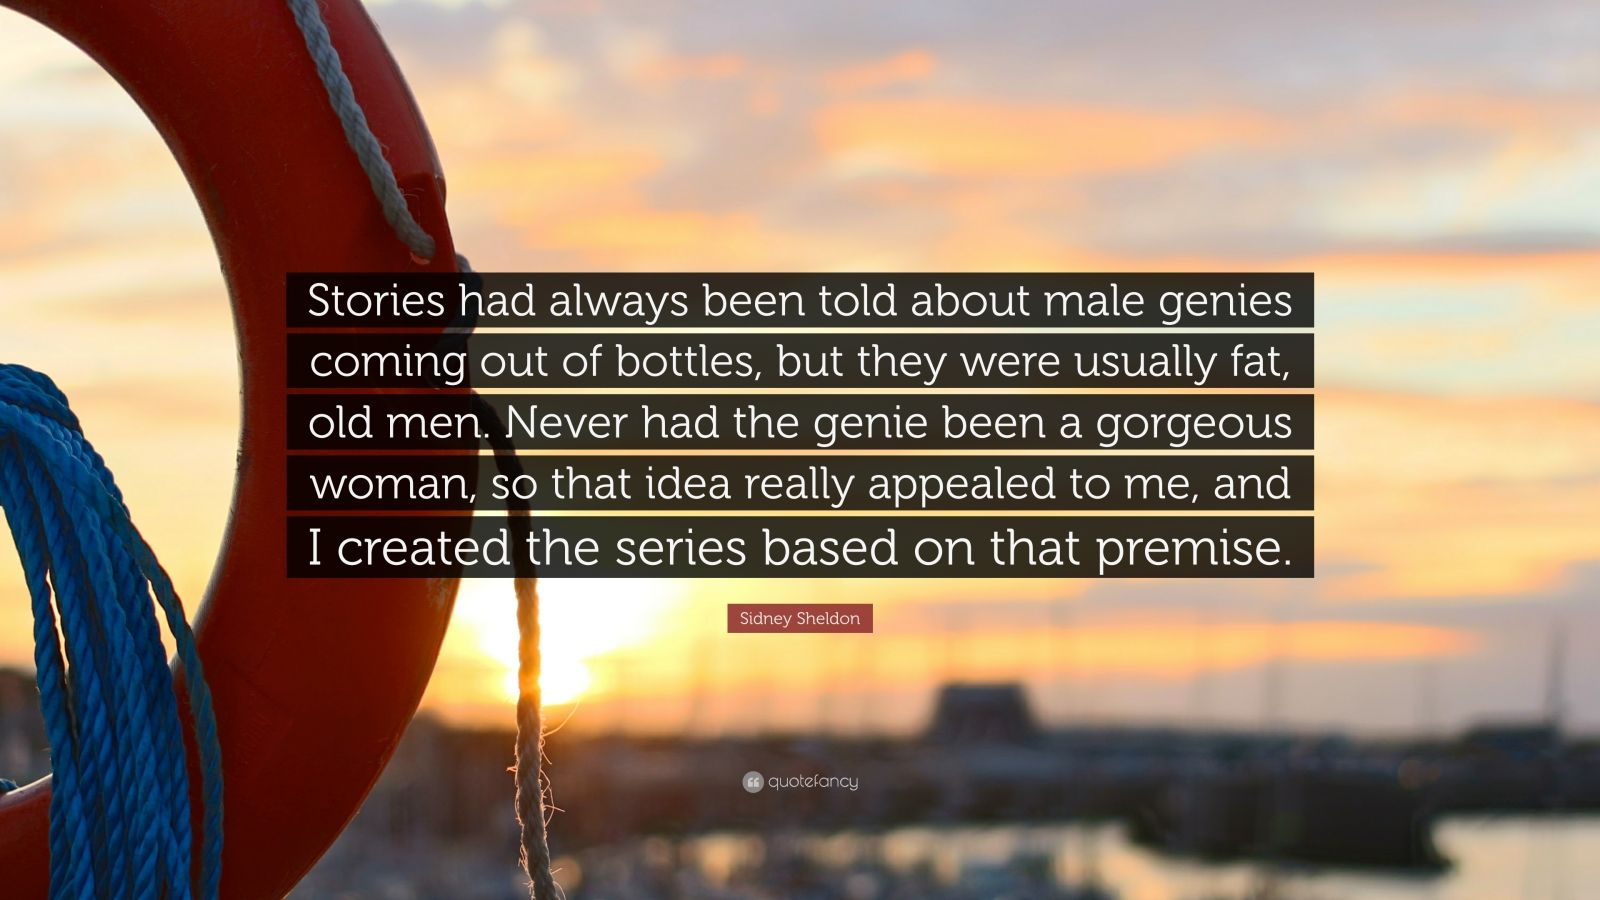 "Sidney Sheldon Quote: ""Stories had always been told about male genies coming out of bottles, but they were usually fat, old men. Never had the genie been a gorgeous woman, so that idea really appealed to me, and I created the series based on that premise."""